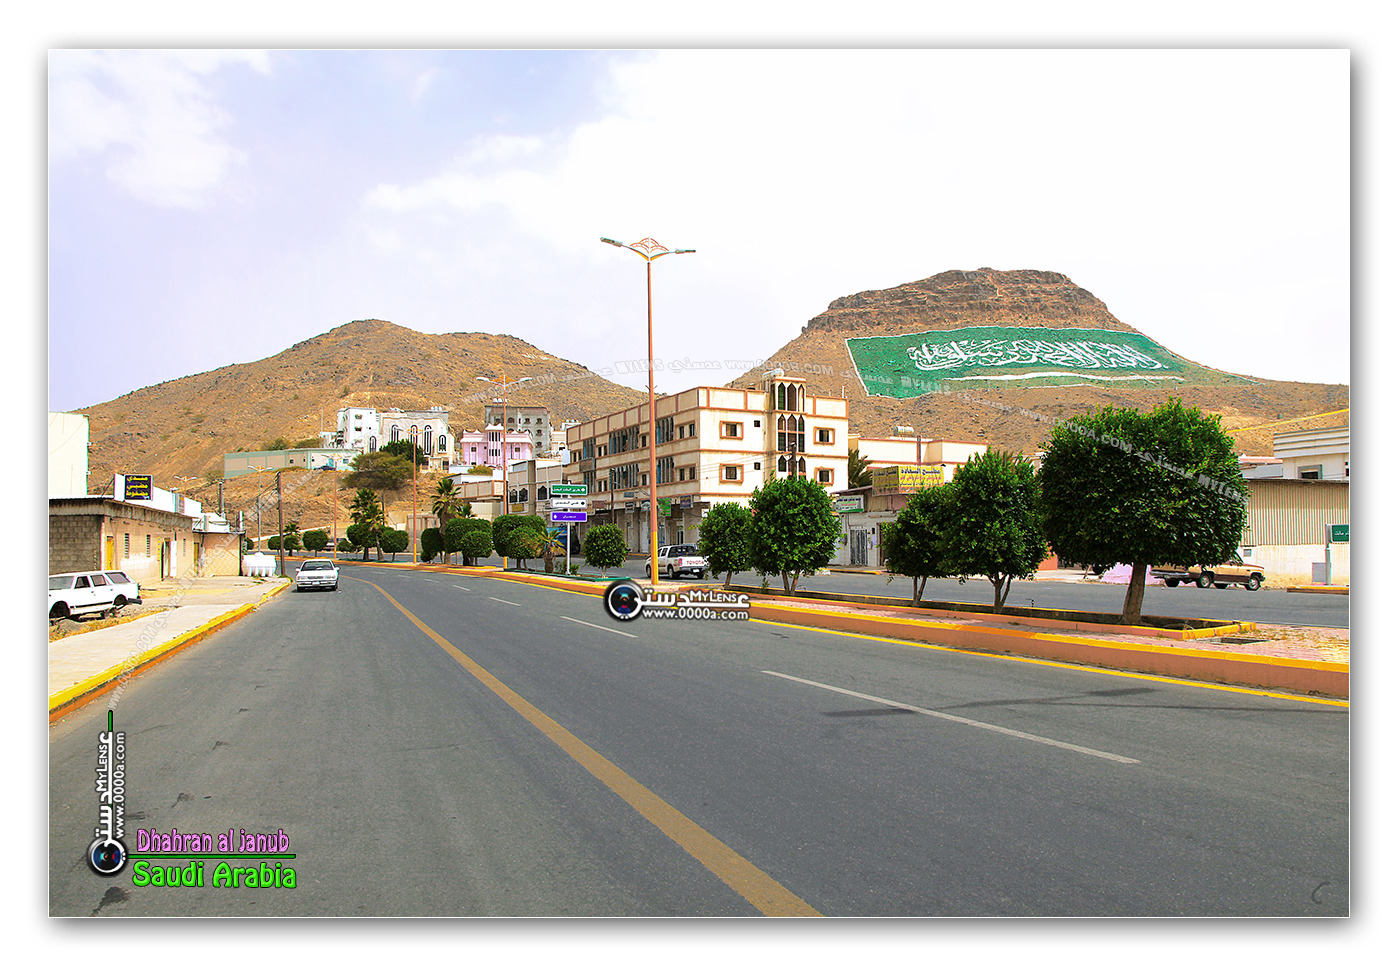 Dhahran Saudi Arabia  city pictures gallery : ... عدستي صور من السعودية ـ Pictures of Saudi Arabia